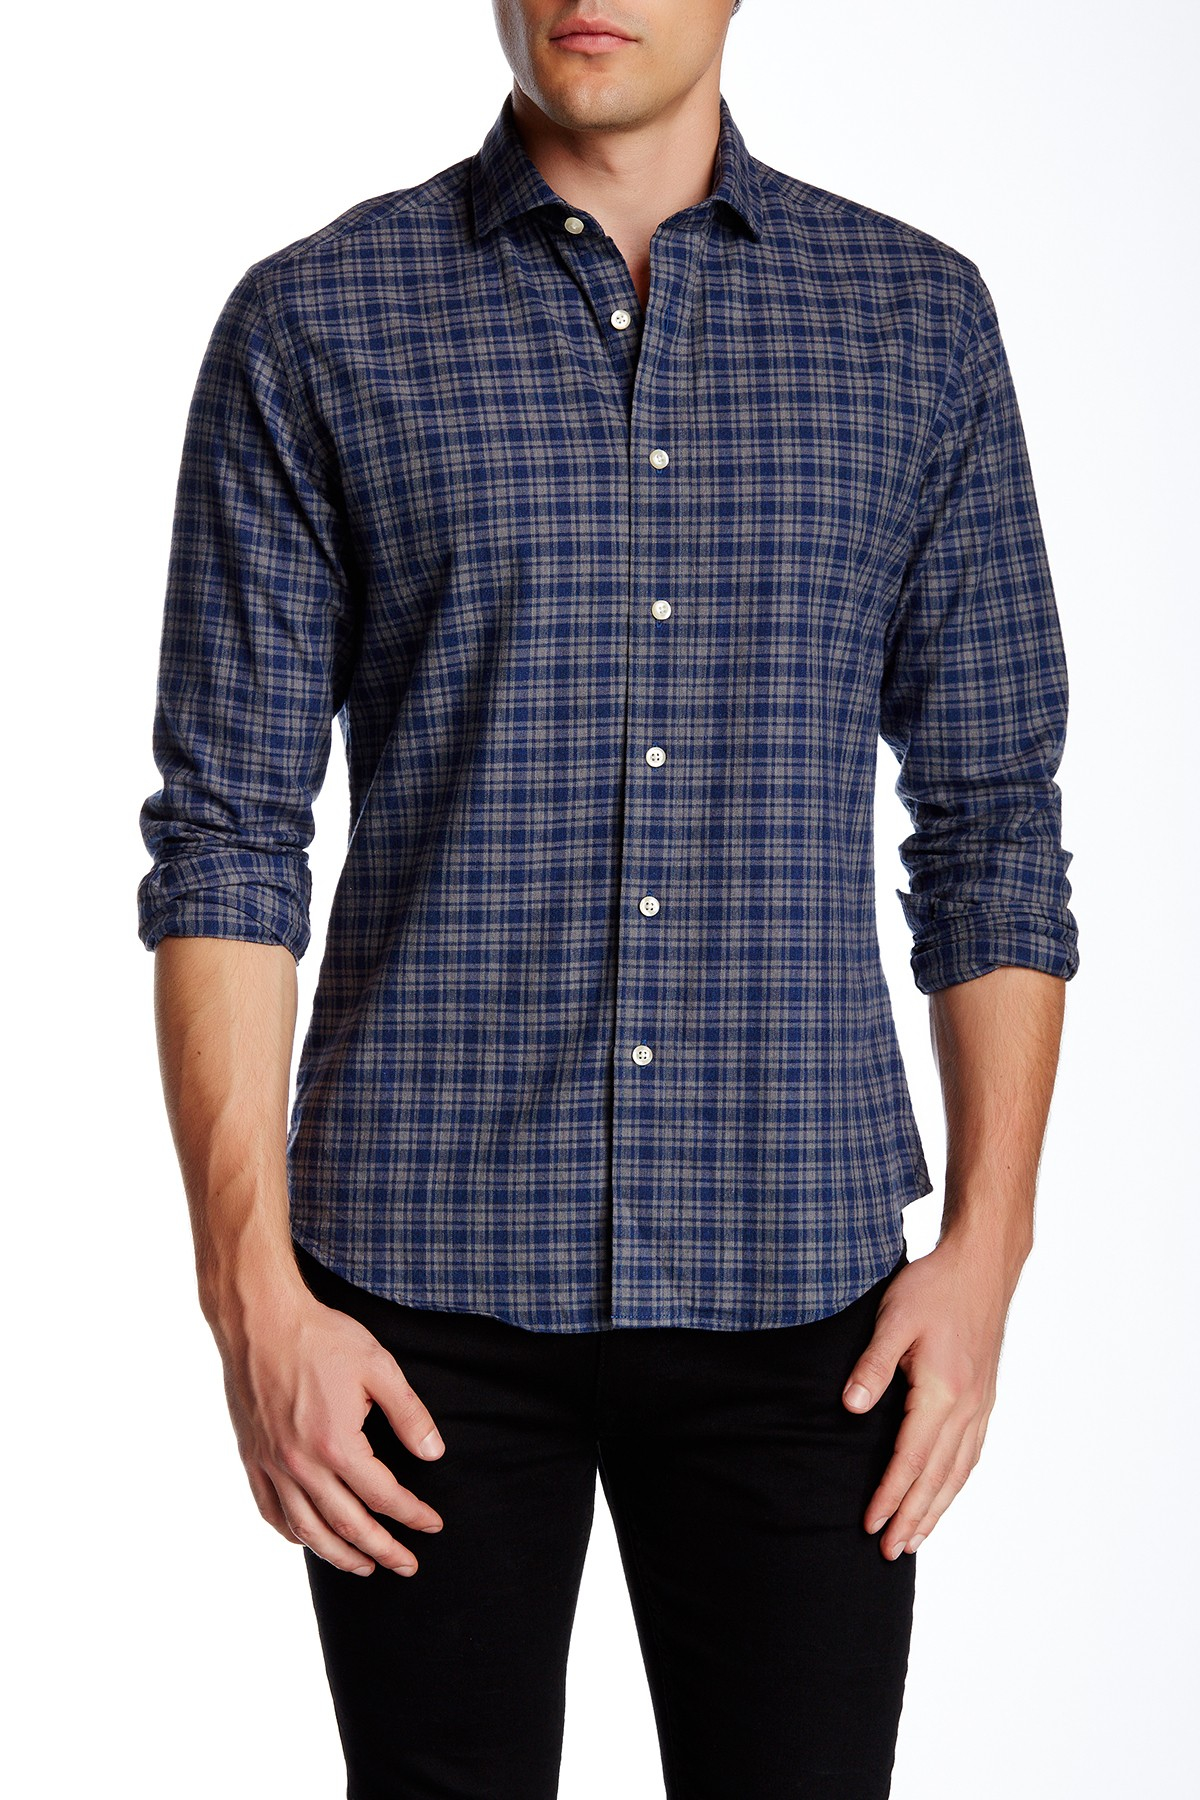 Slate And Stone Clothing : Lyst slate stone button front slim fit shirt in blue